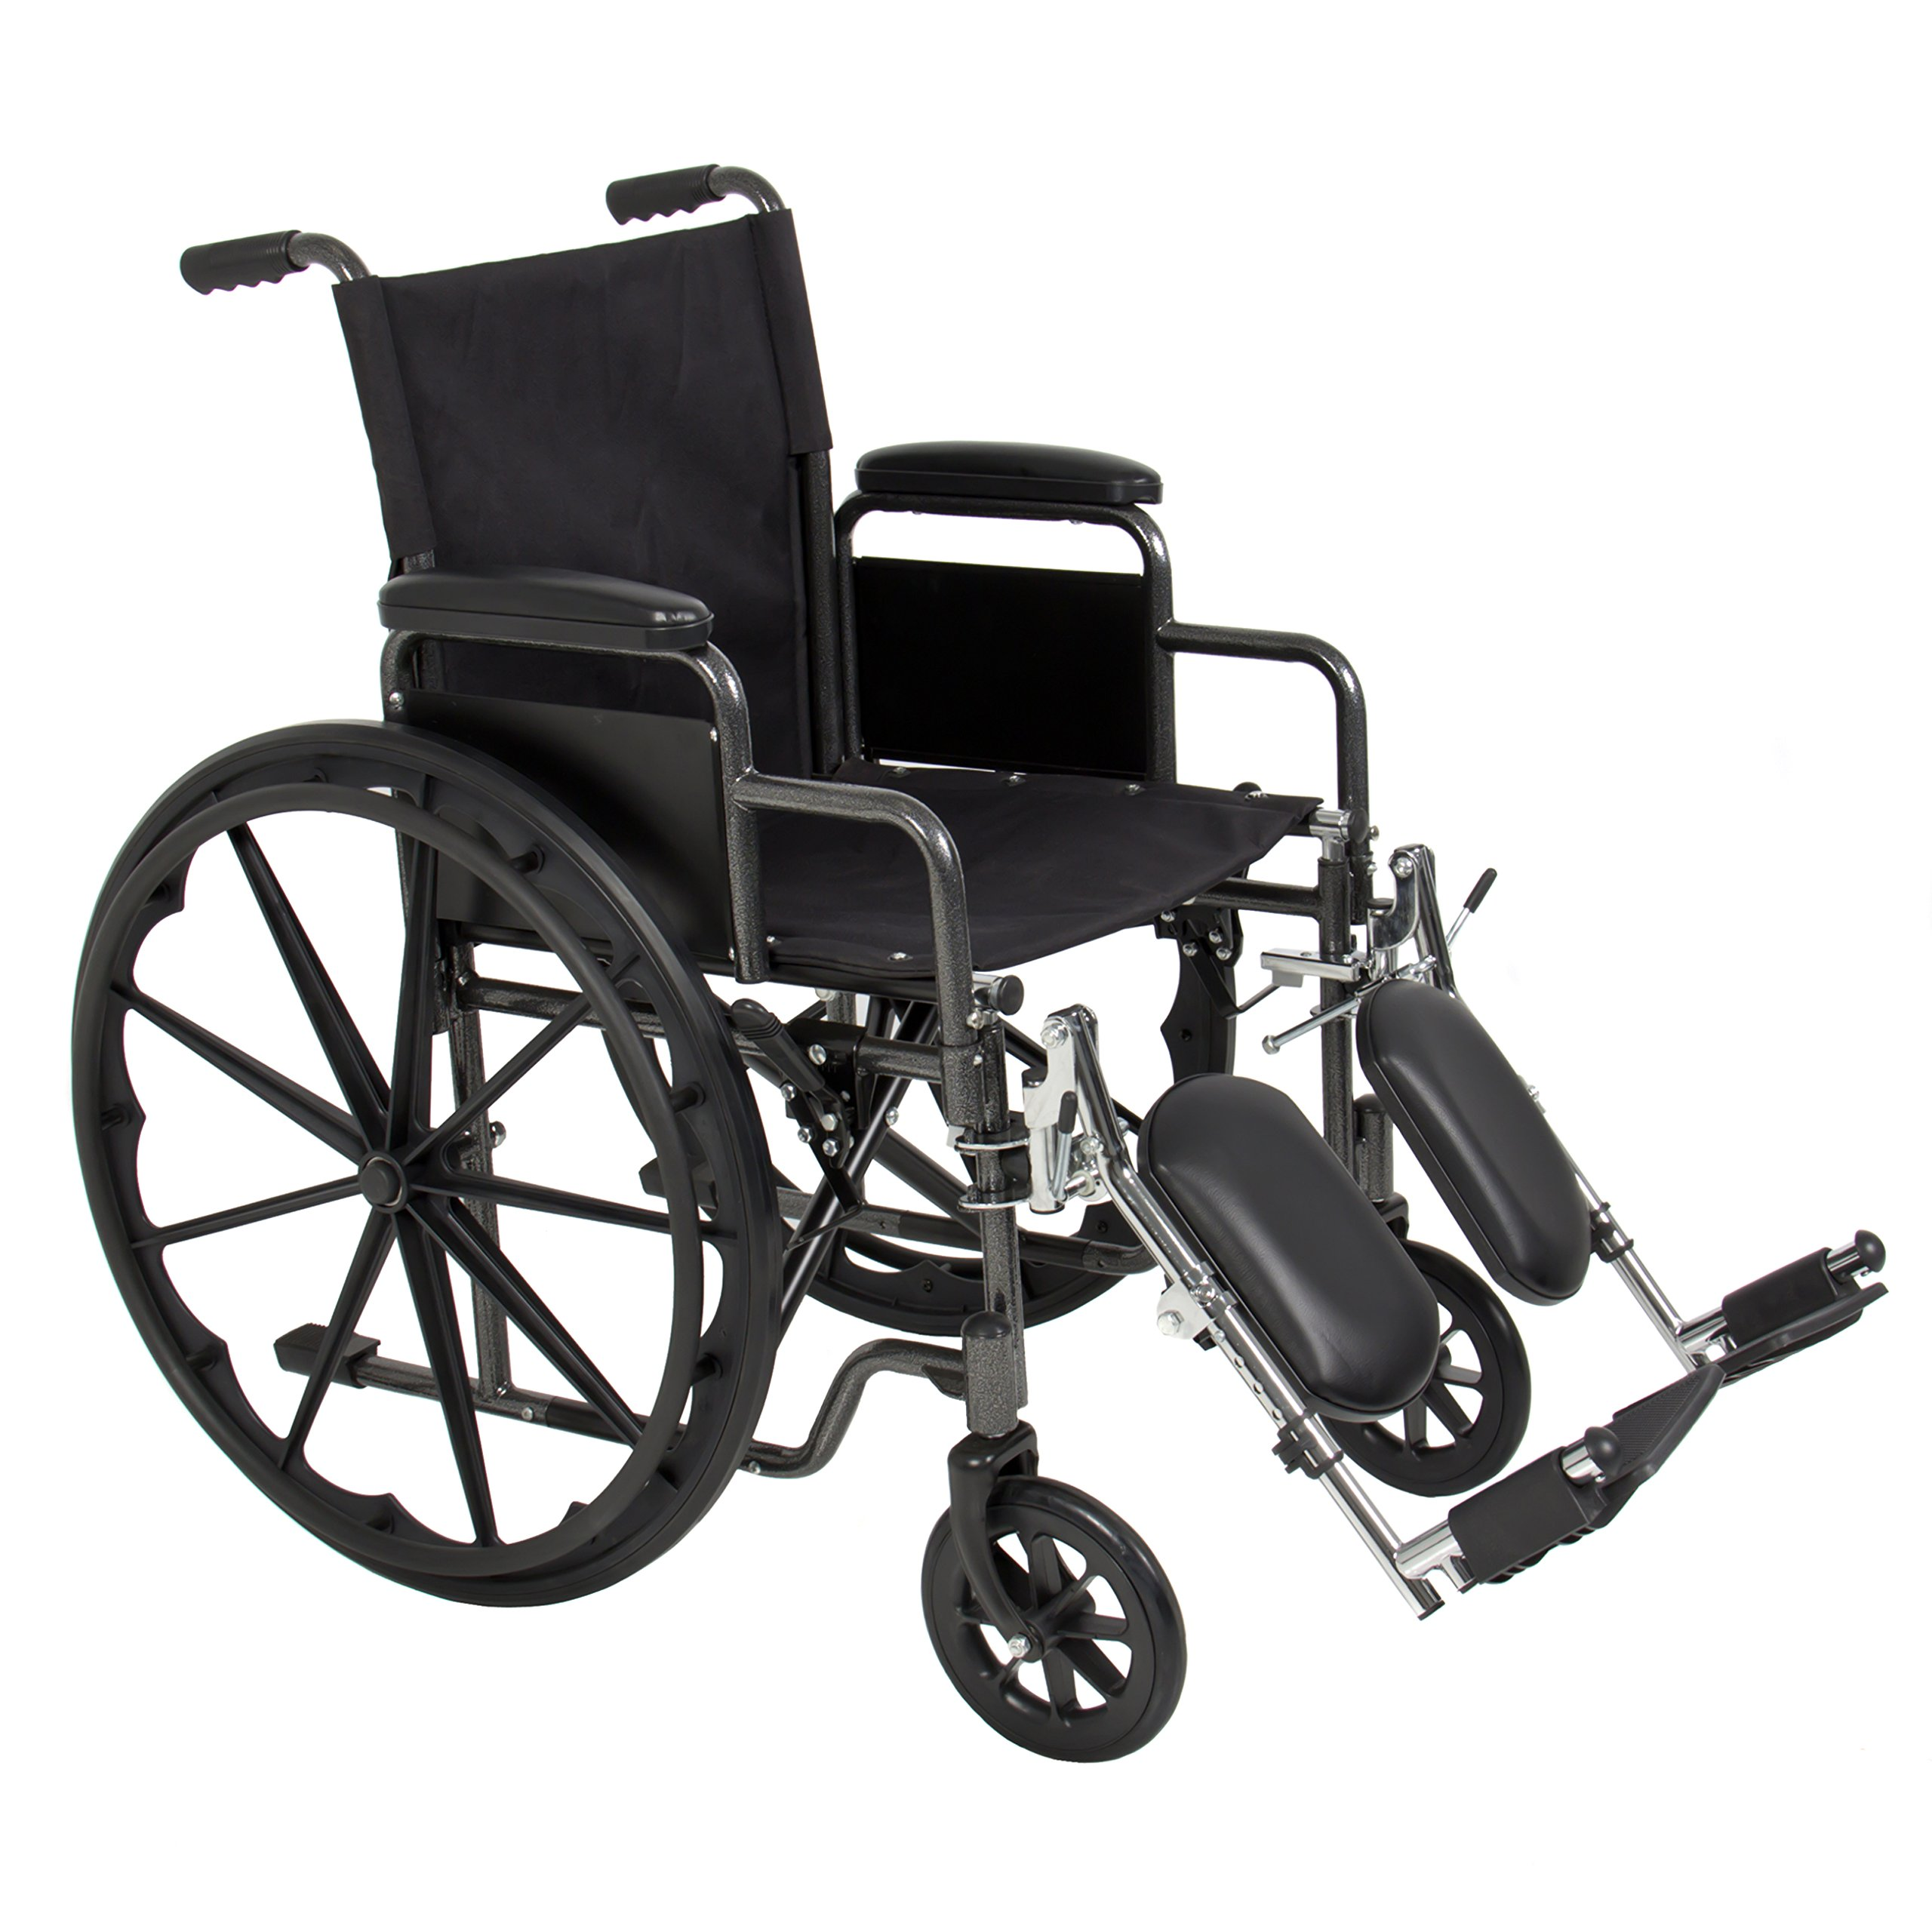 Best Choice Products Folding Lightweight Wheelchair w/ Full Armrests and Elevating Legrests - Black